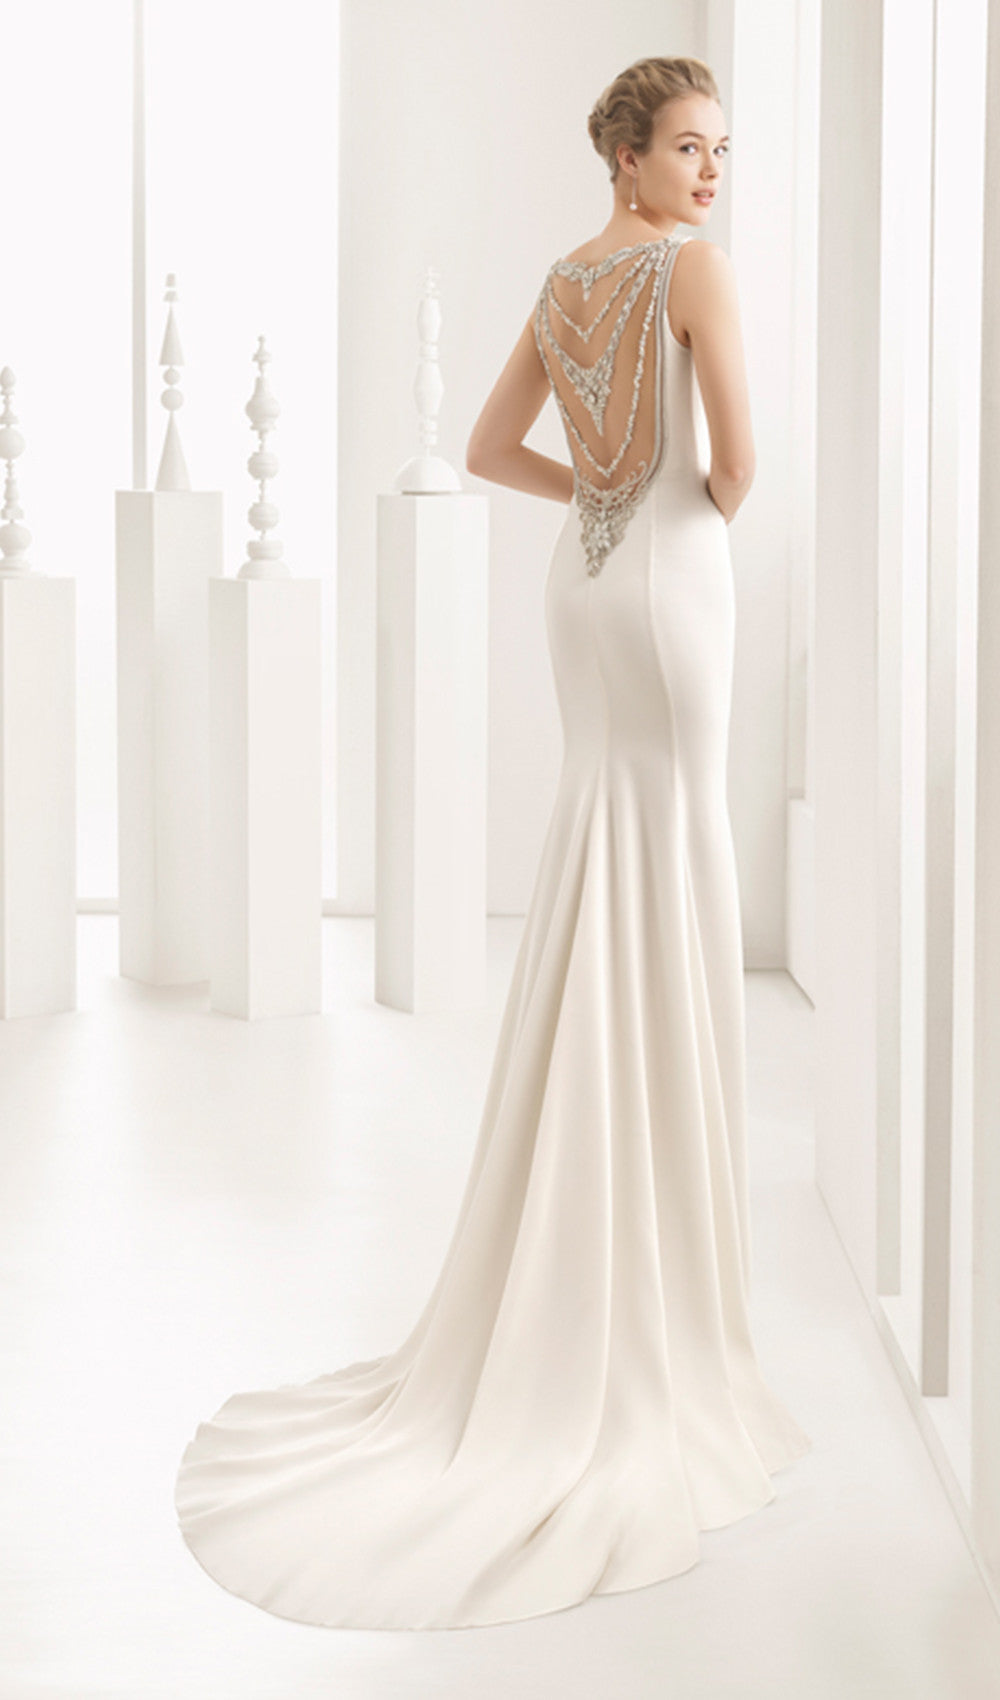 Rosa Clara - STYLE NAISHA | Schaffer's Bridal in Des Moines, Iowa and Scottsdale, Arizona.